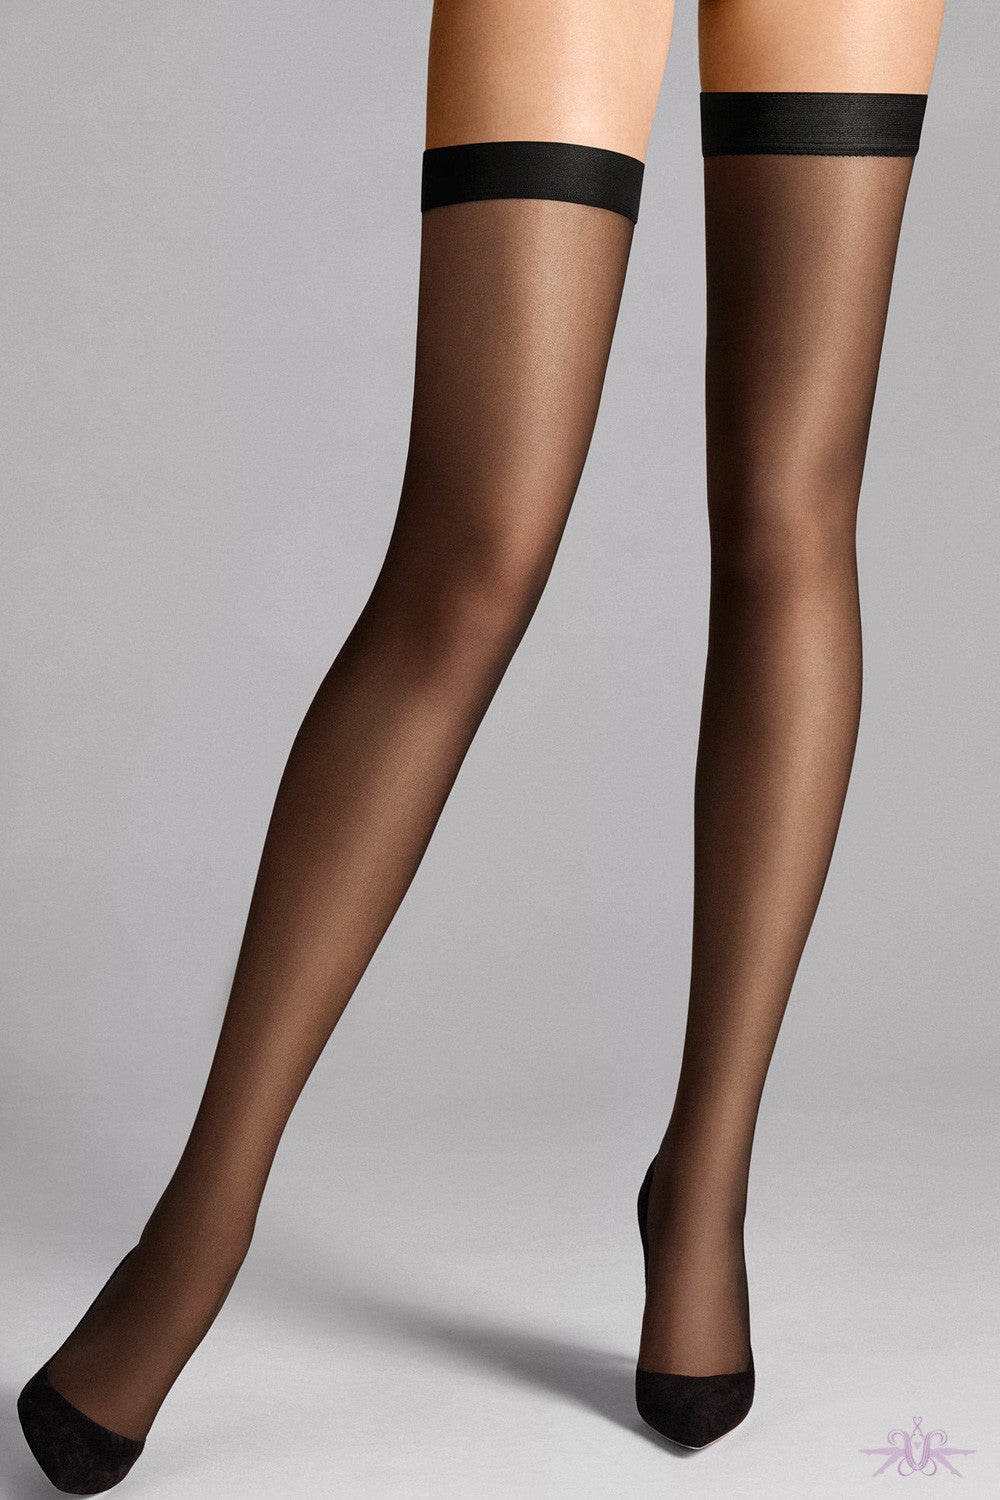 Wolford Individual 10 Stay Ups